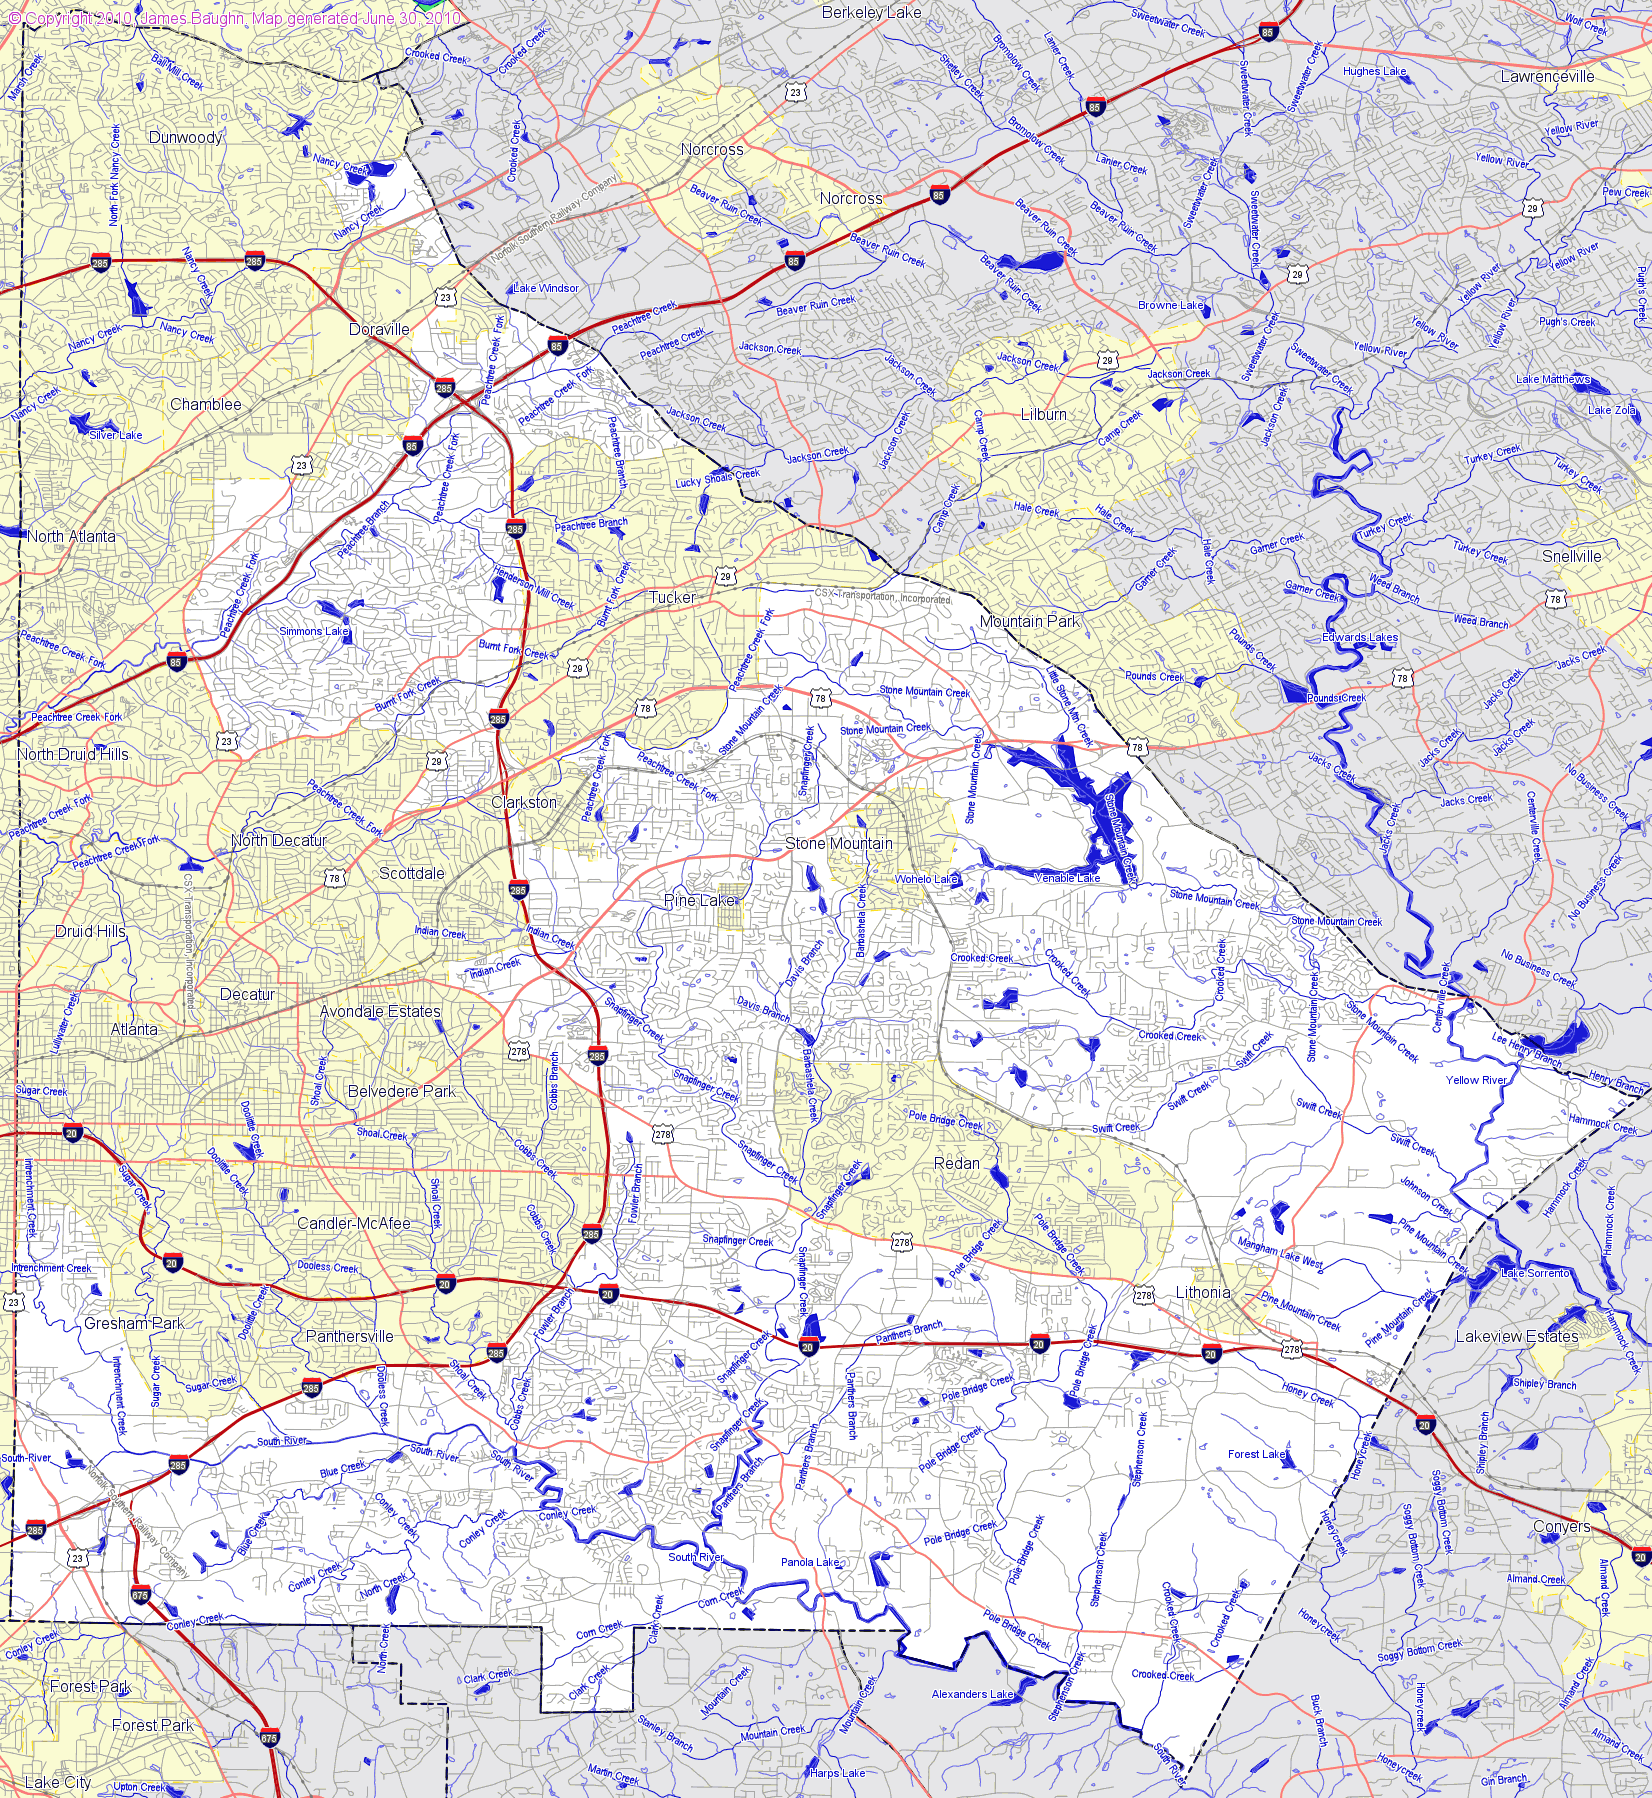 County Map Of Georgia With Roads.Georgia Road Map Georgia State Highway Road Map Georgia Road Map